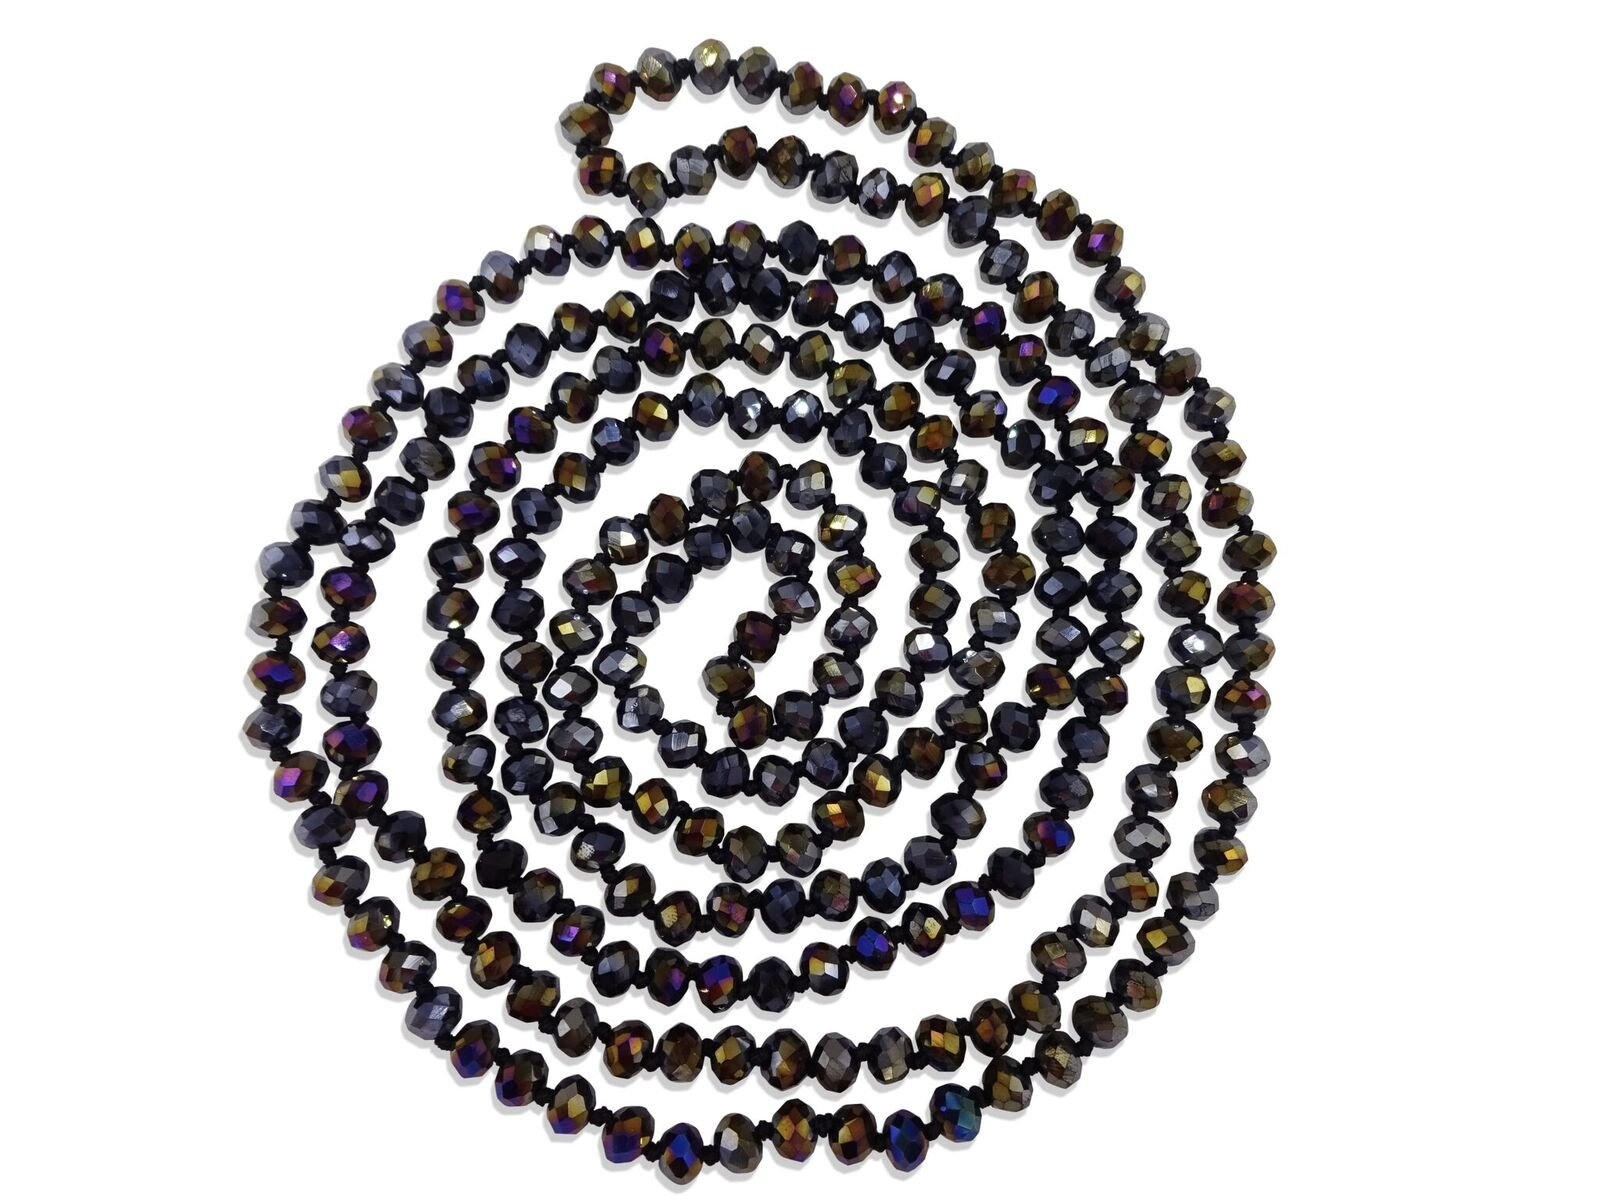 BjB 80-inch Long Endless Infinity Beaded Statement Crystal Necklace in Jet Black Aurora Borealis